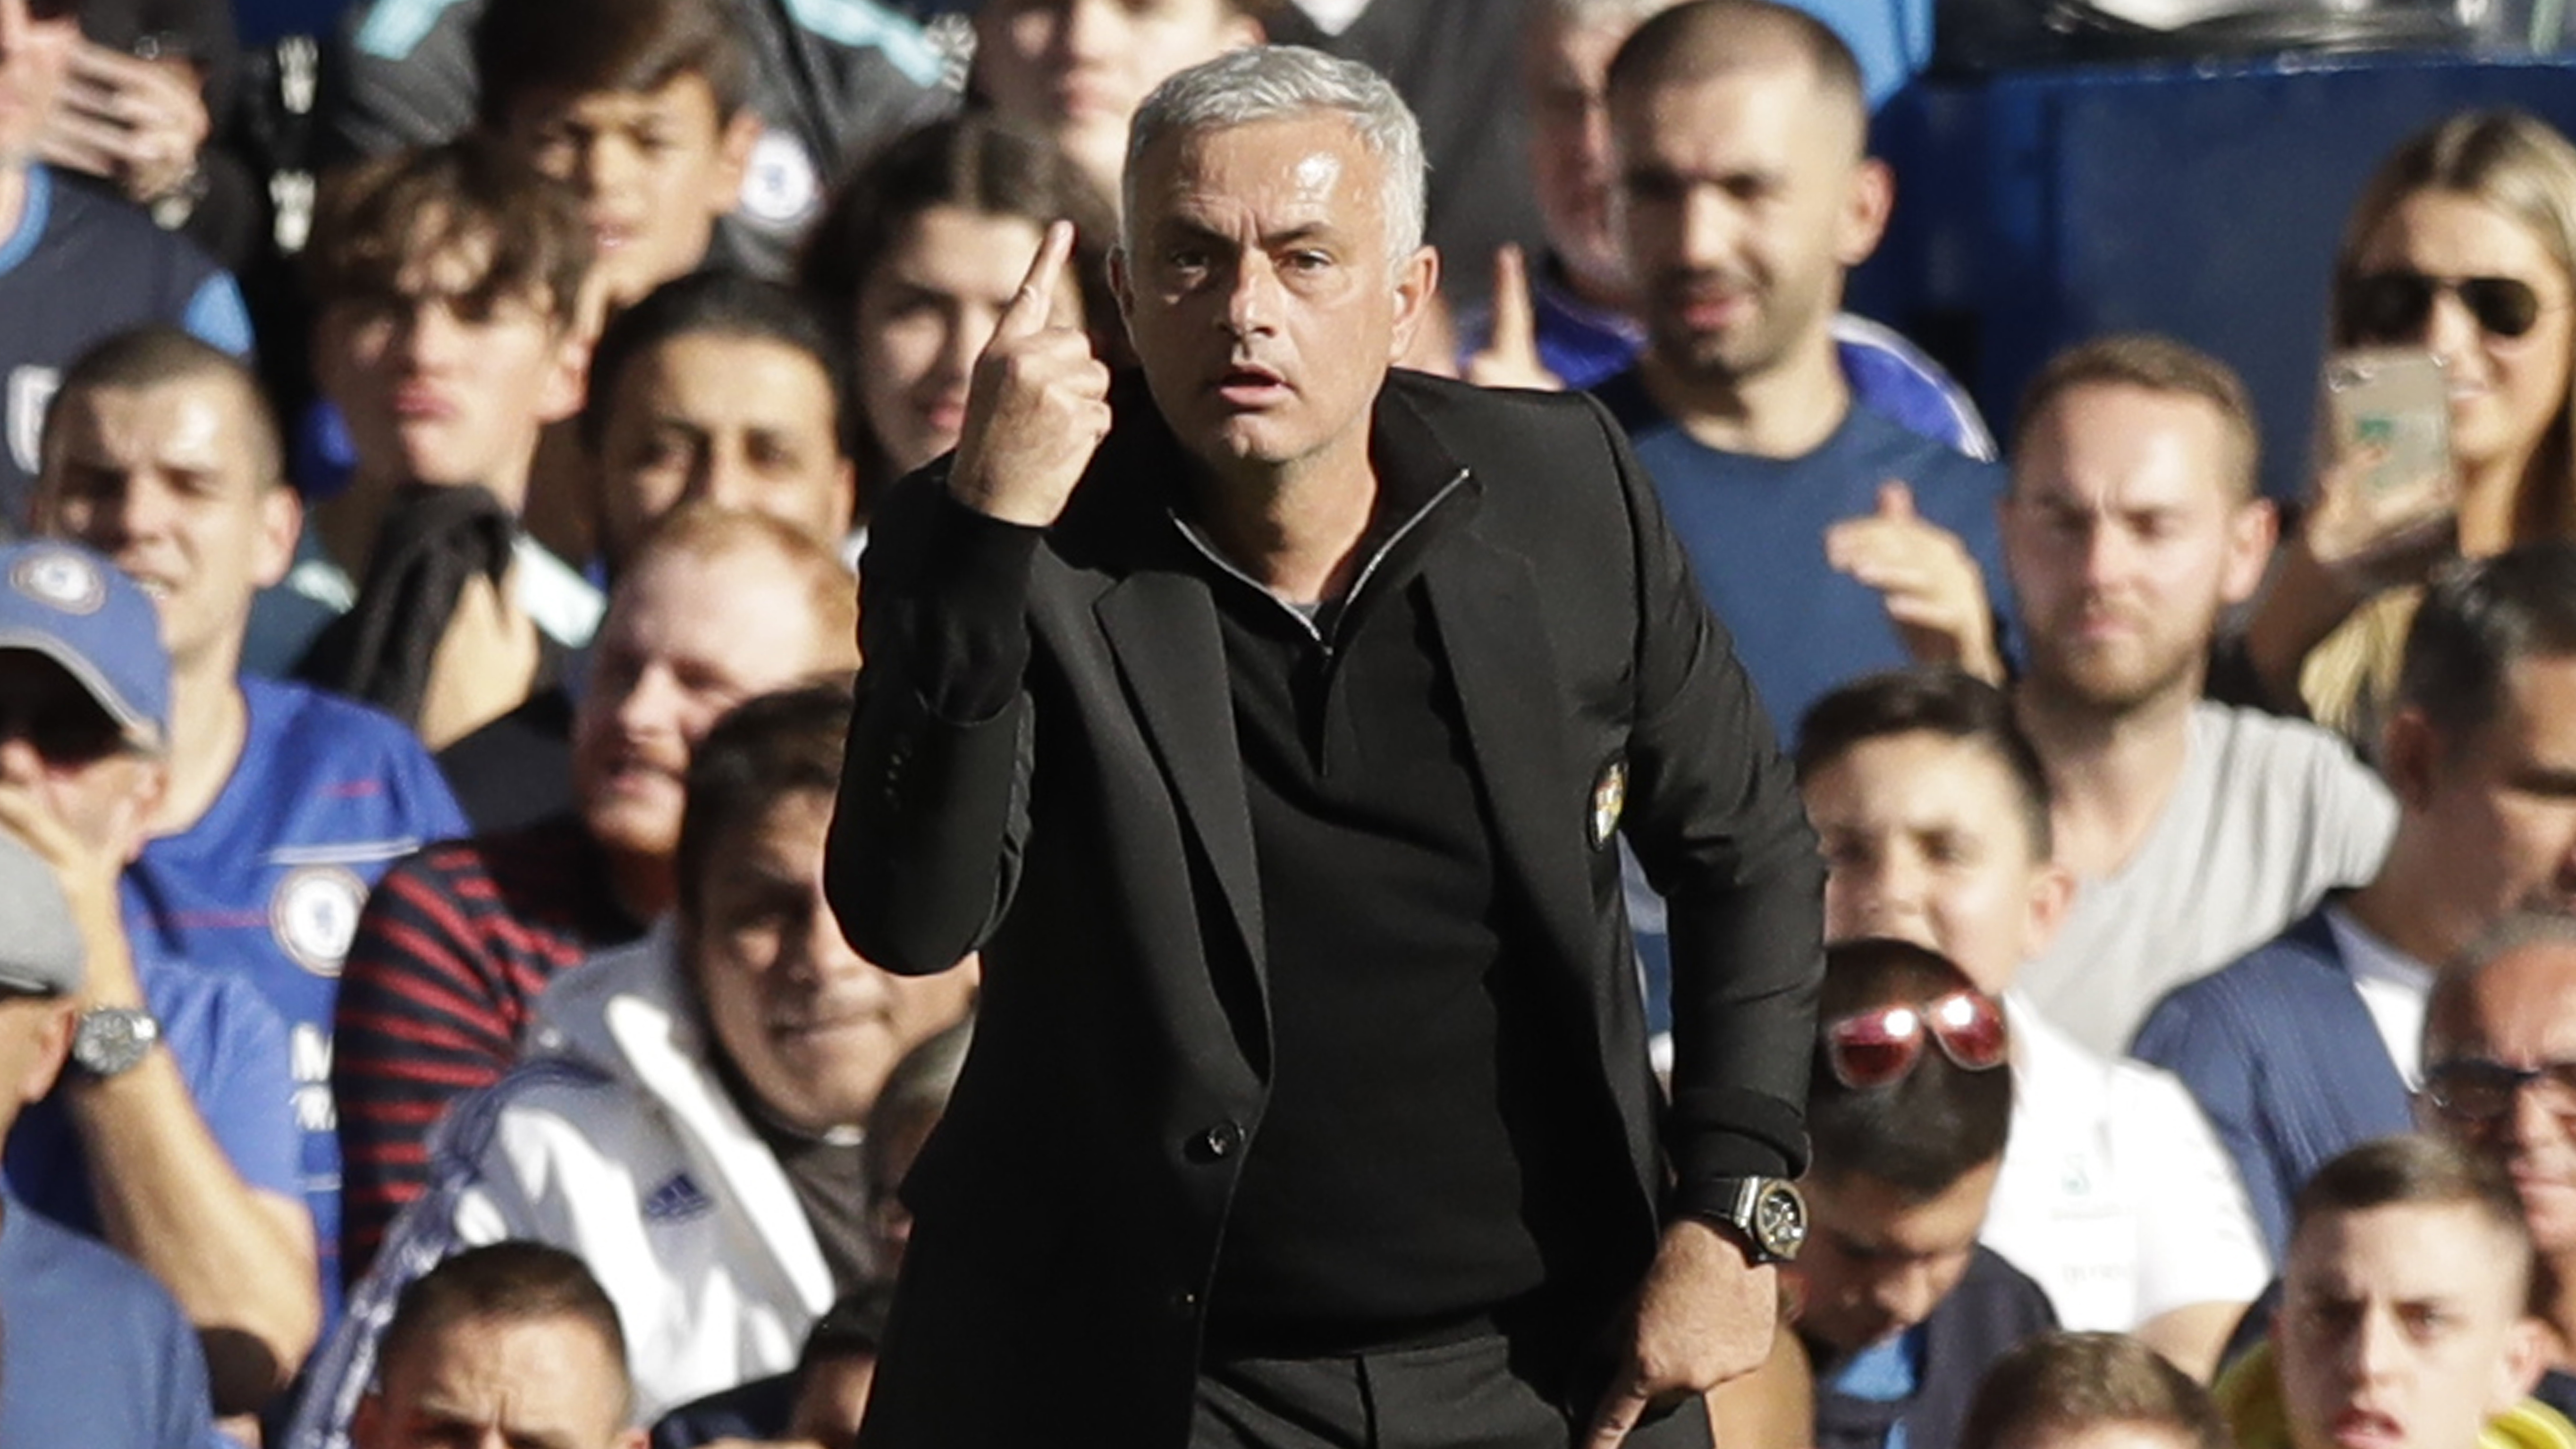 Jose Mourinho On The Lookout For Manchester United Mole